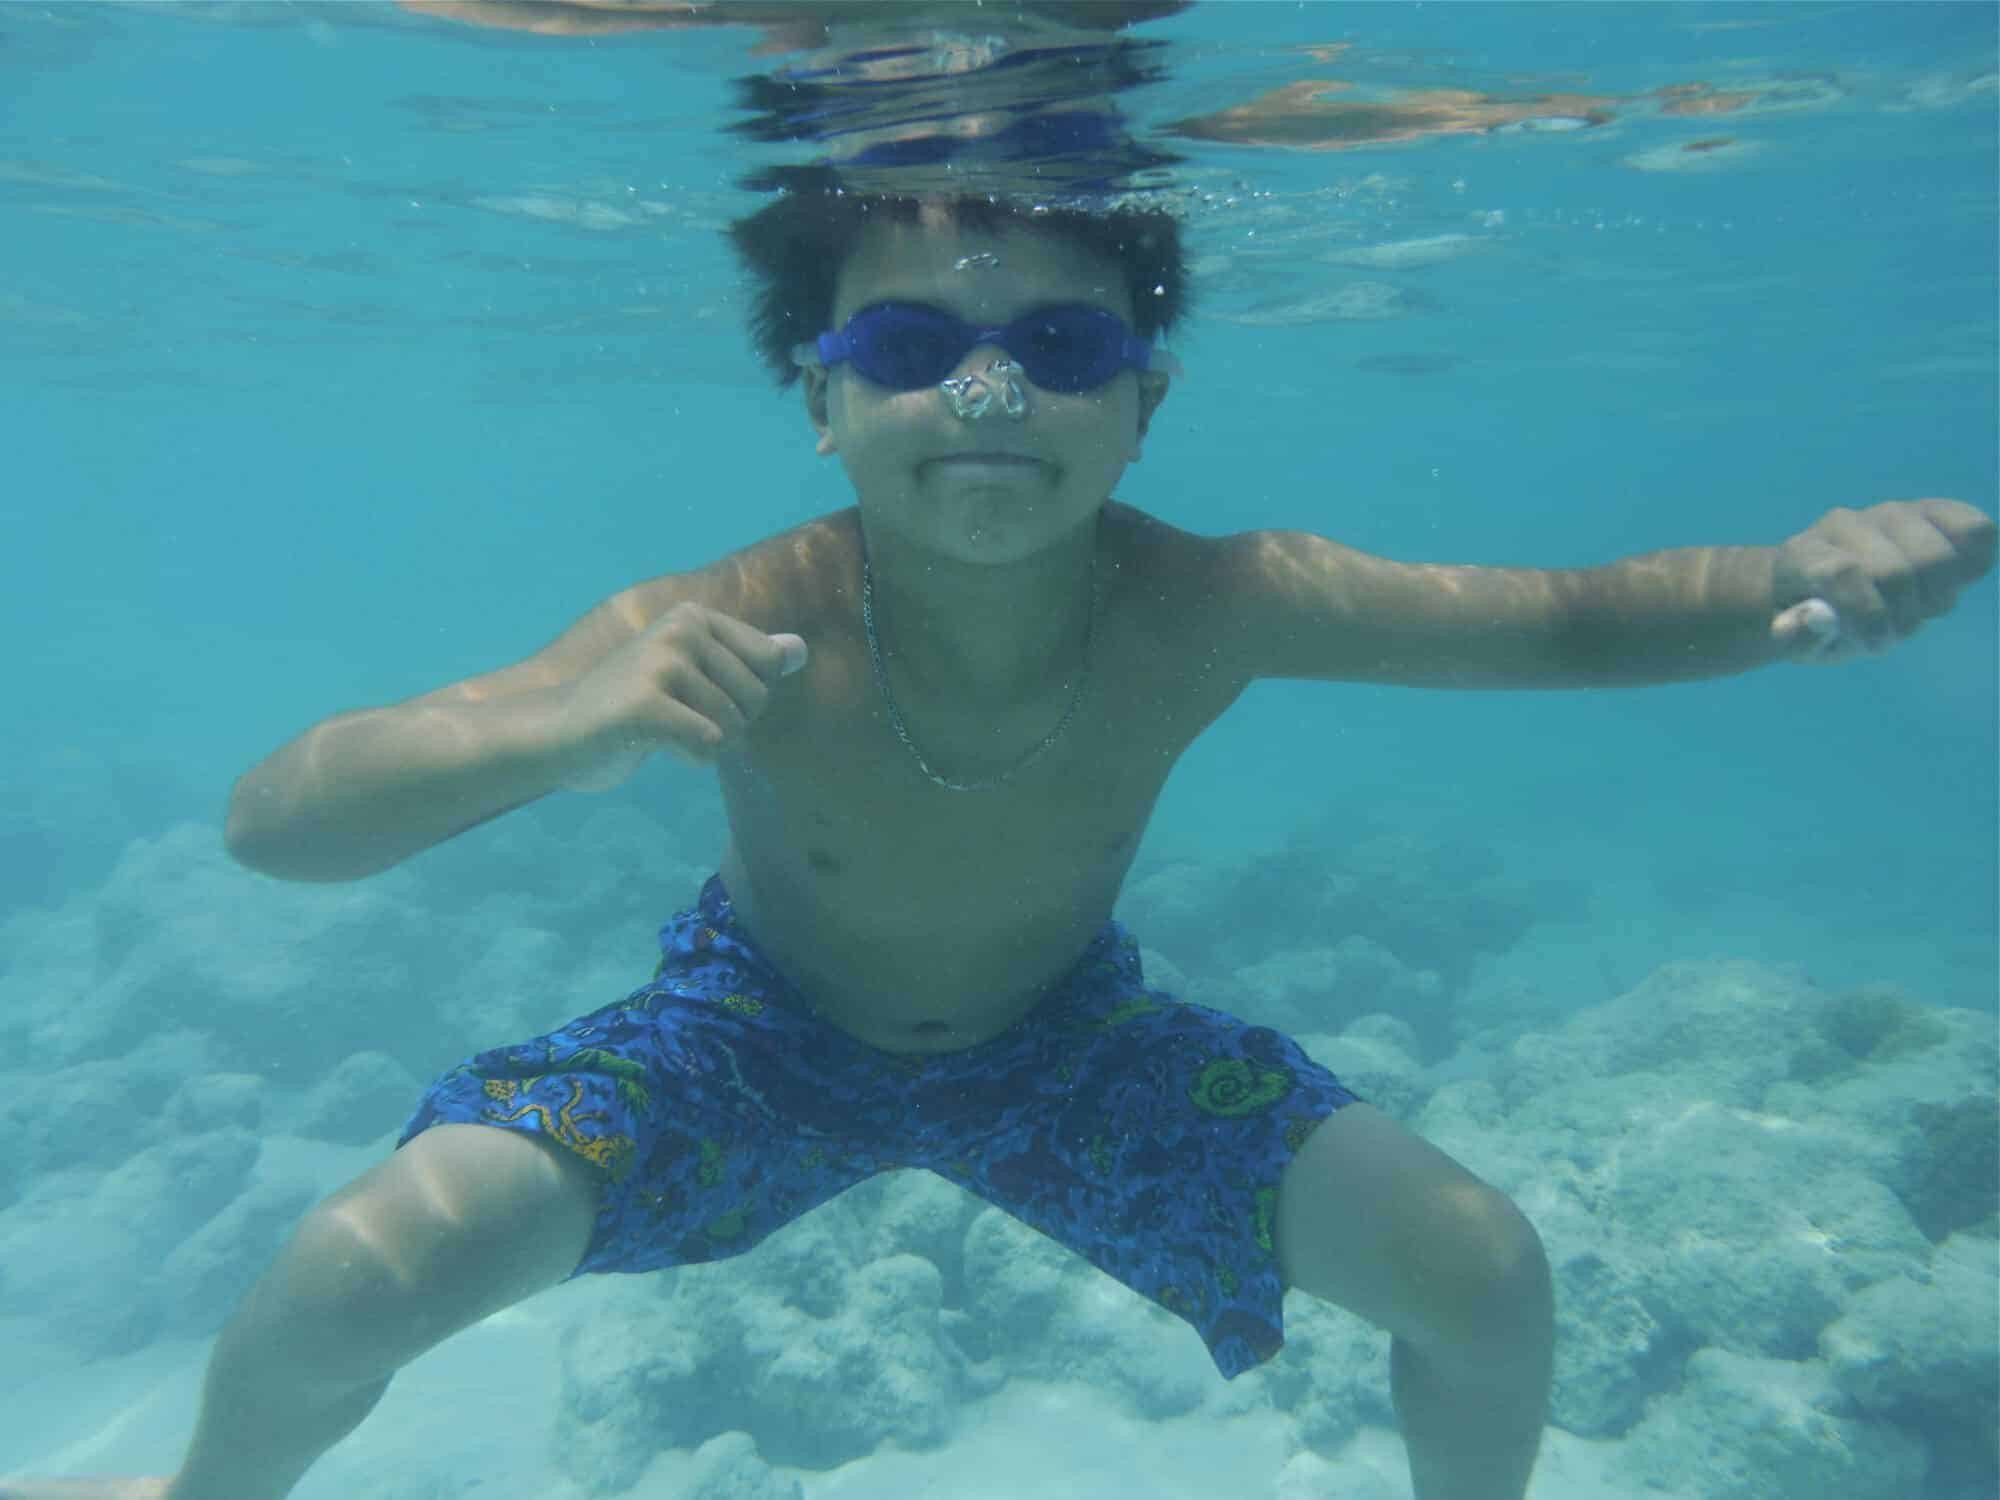 Underwater photo in Turks and Caicos taken with Fujifilm XP70